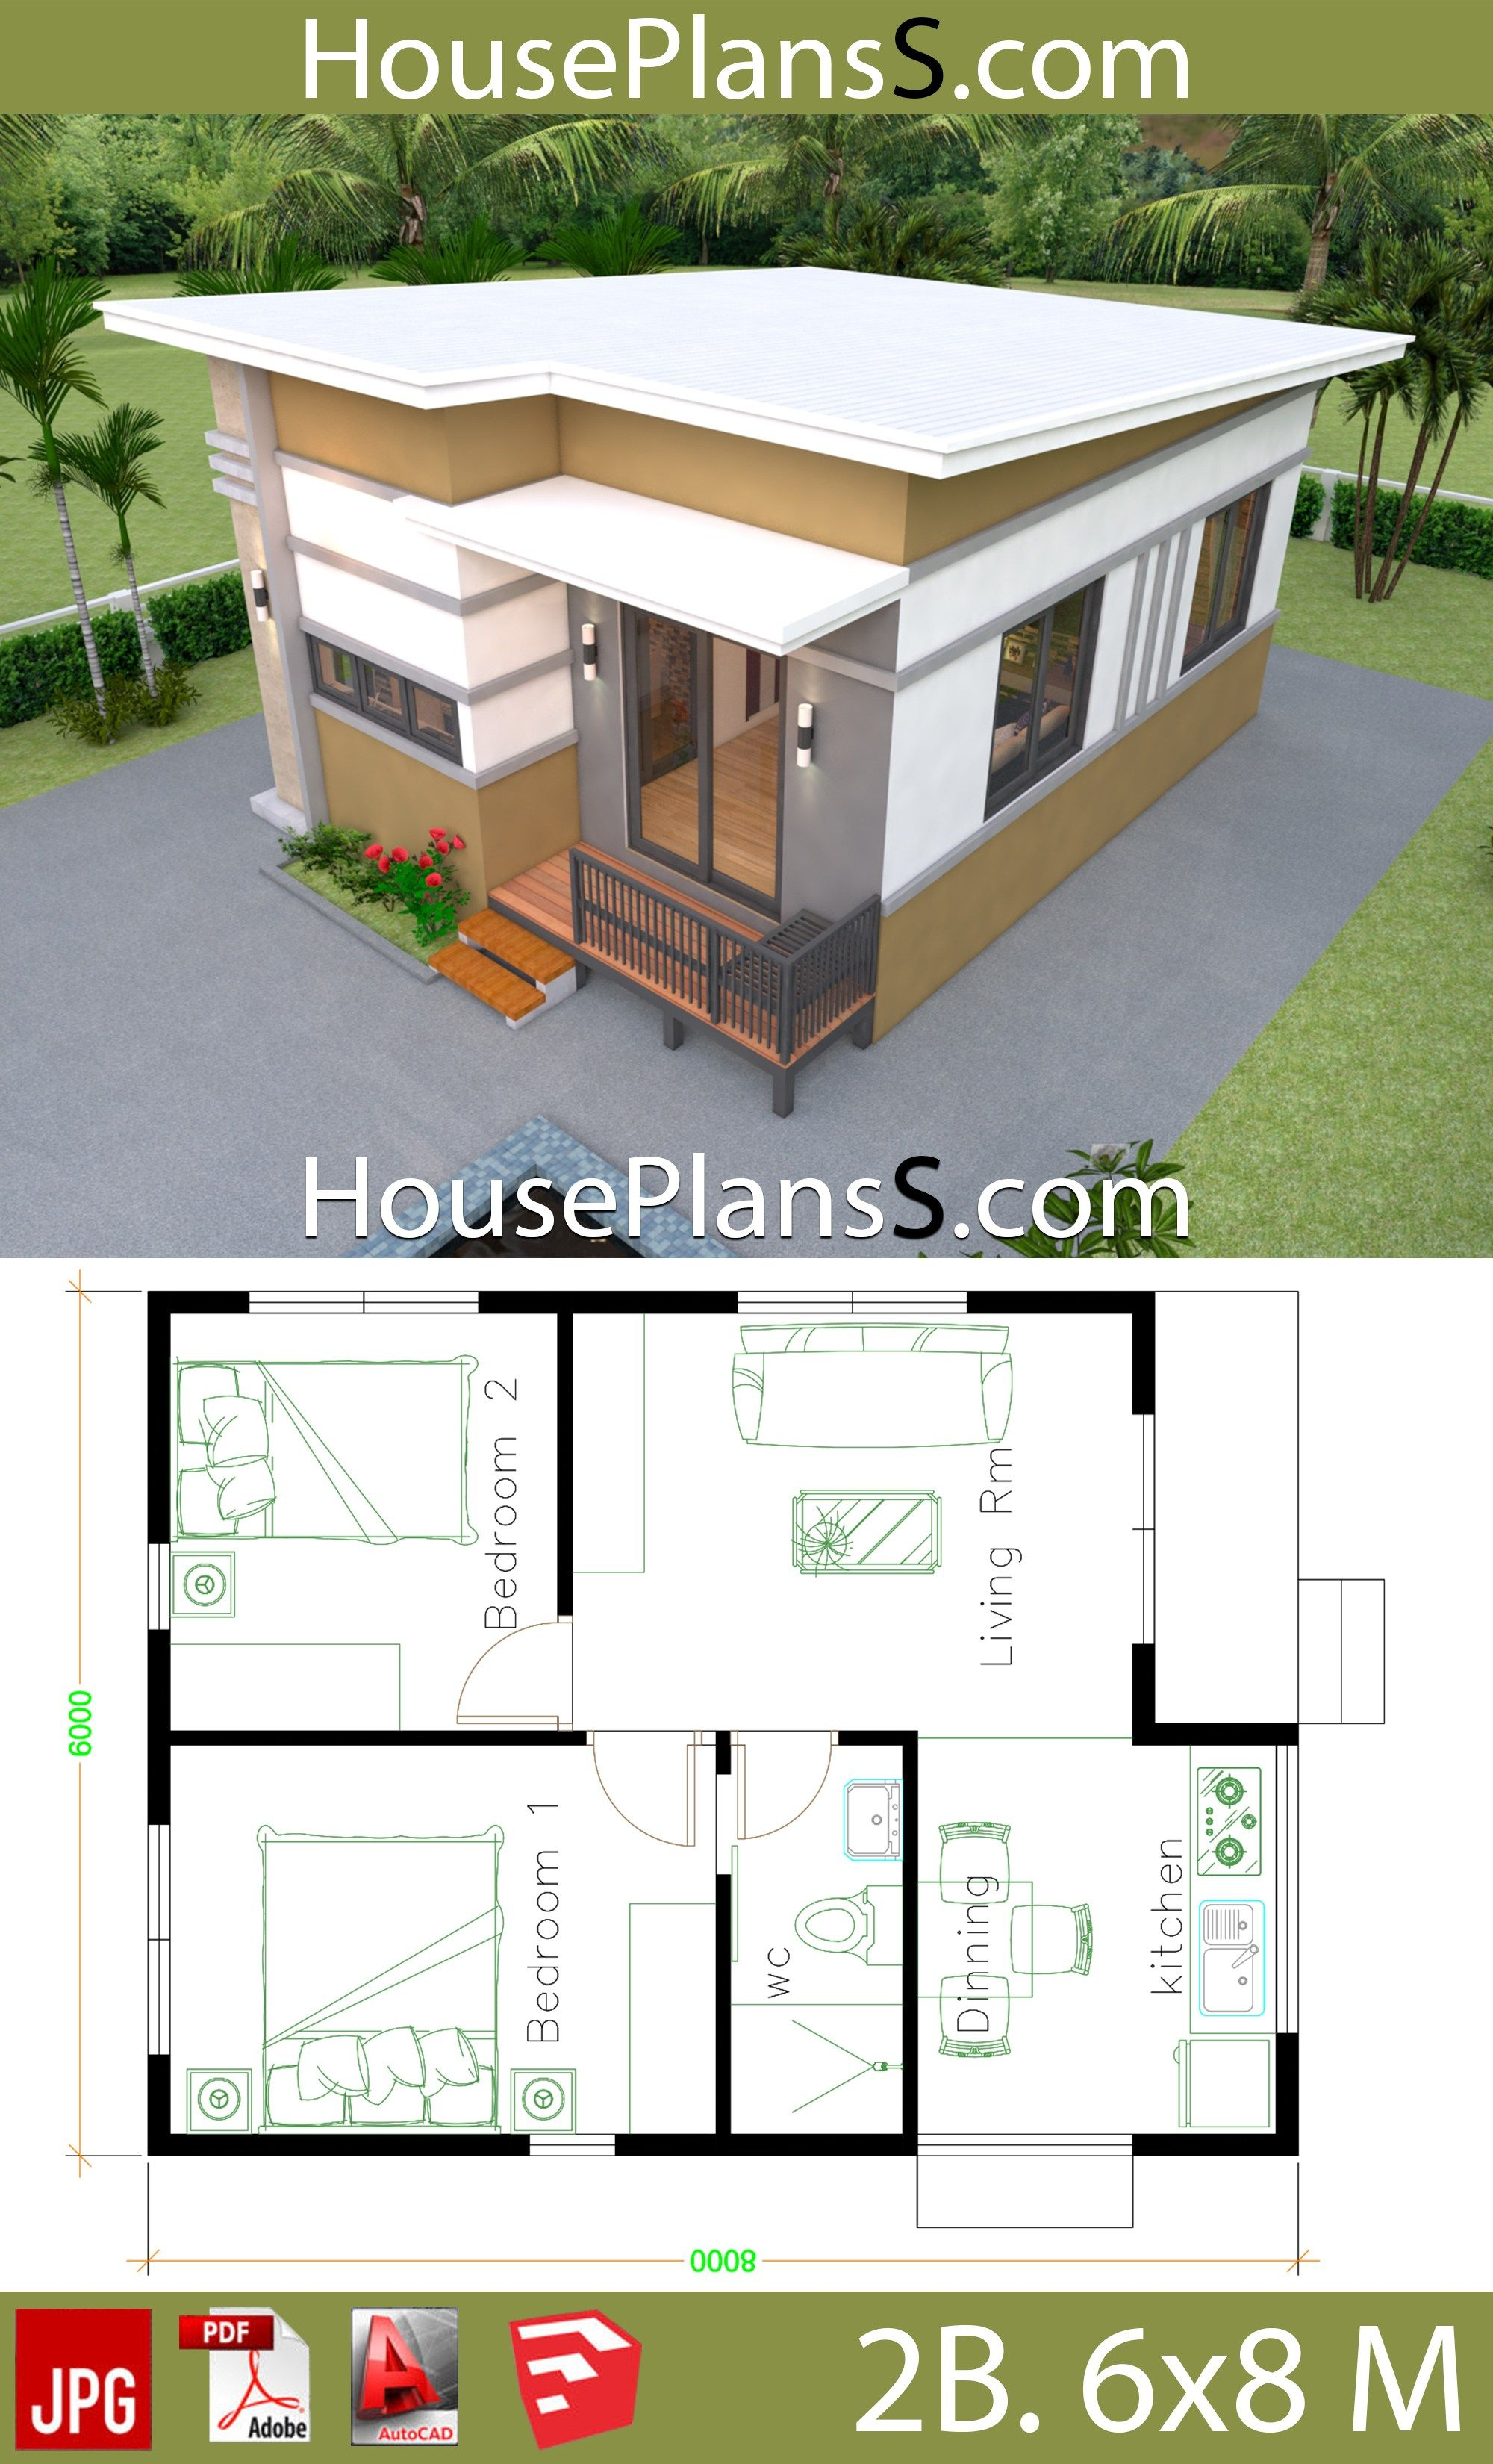 Small House Design Plans 6x8 With 2 Bedrooms House Plans 3d Small House Design Plans Small House Design Dream House Pictures